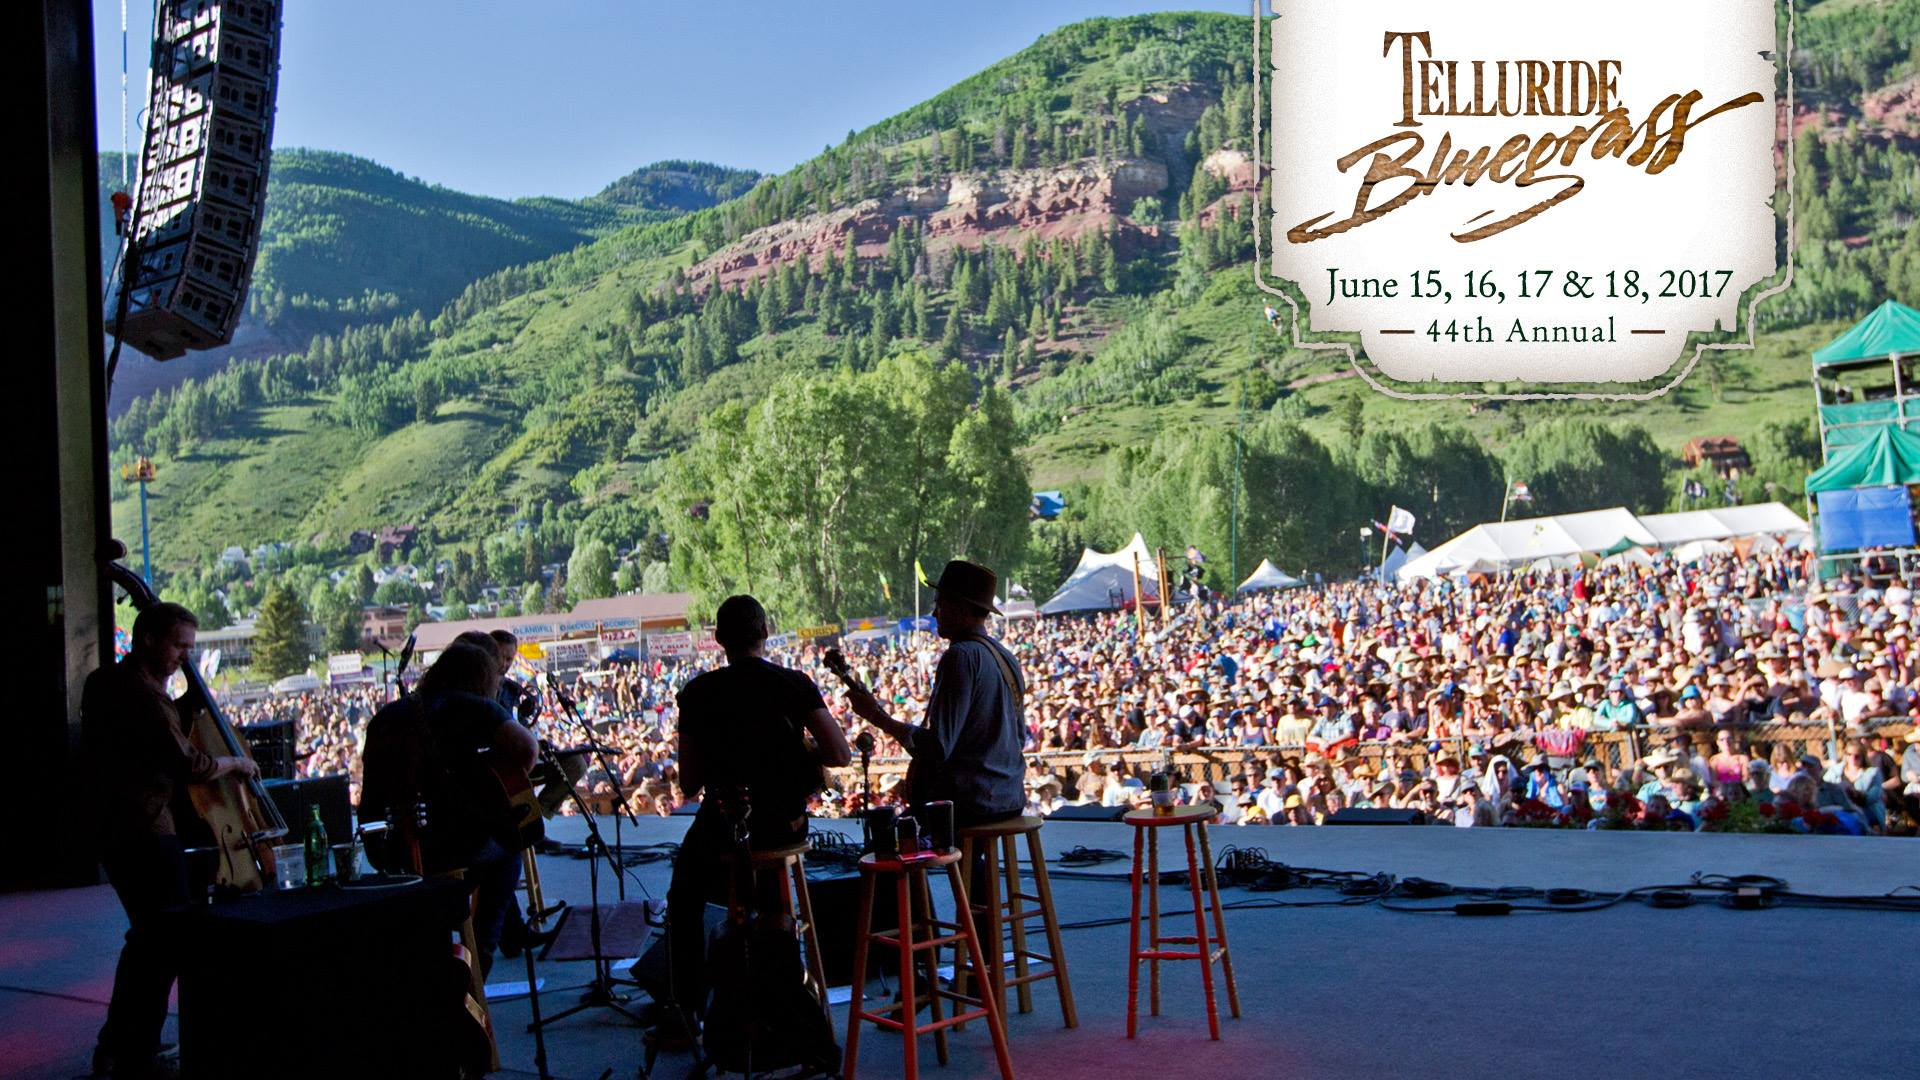 image for event Telluride Bluegrass Festival: Dispatch, Sam Bush Band, Margo Price and More in Telluride, CO on Jun 17, 2017